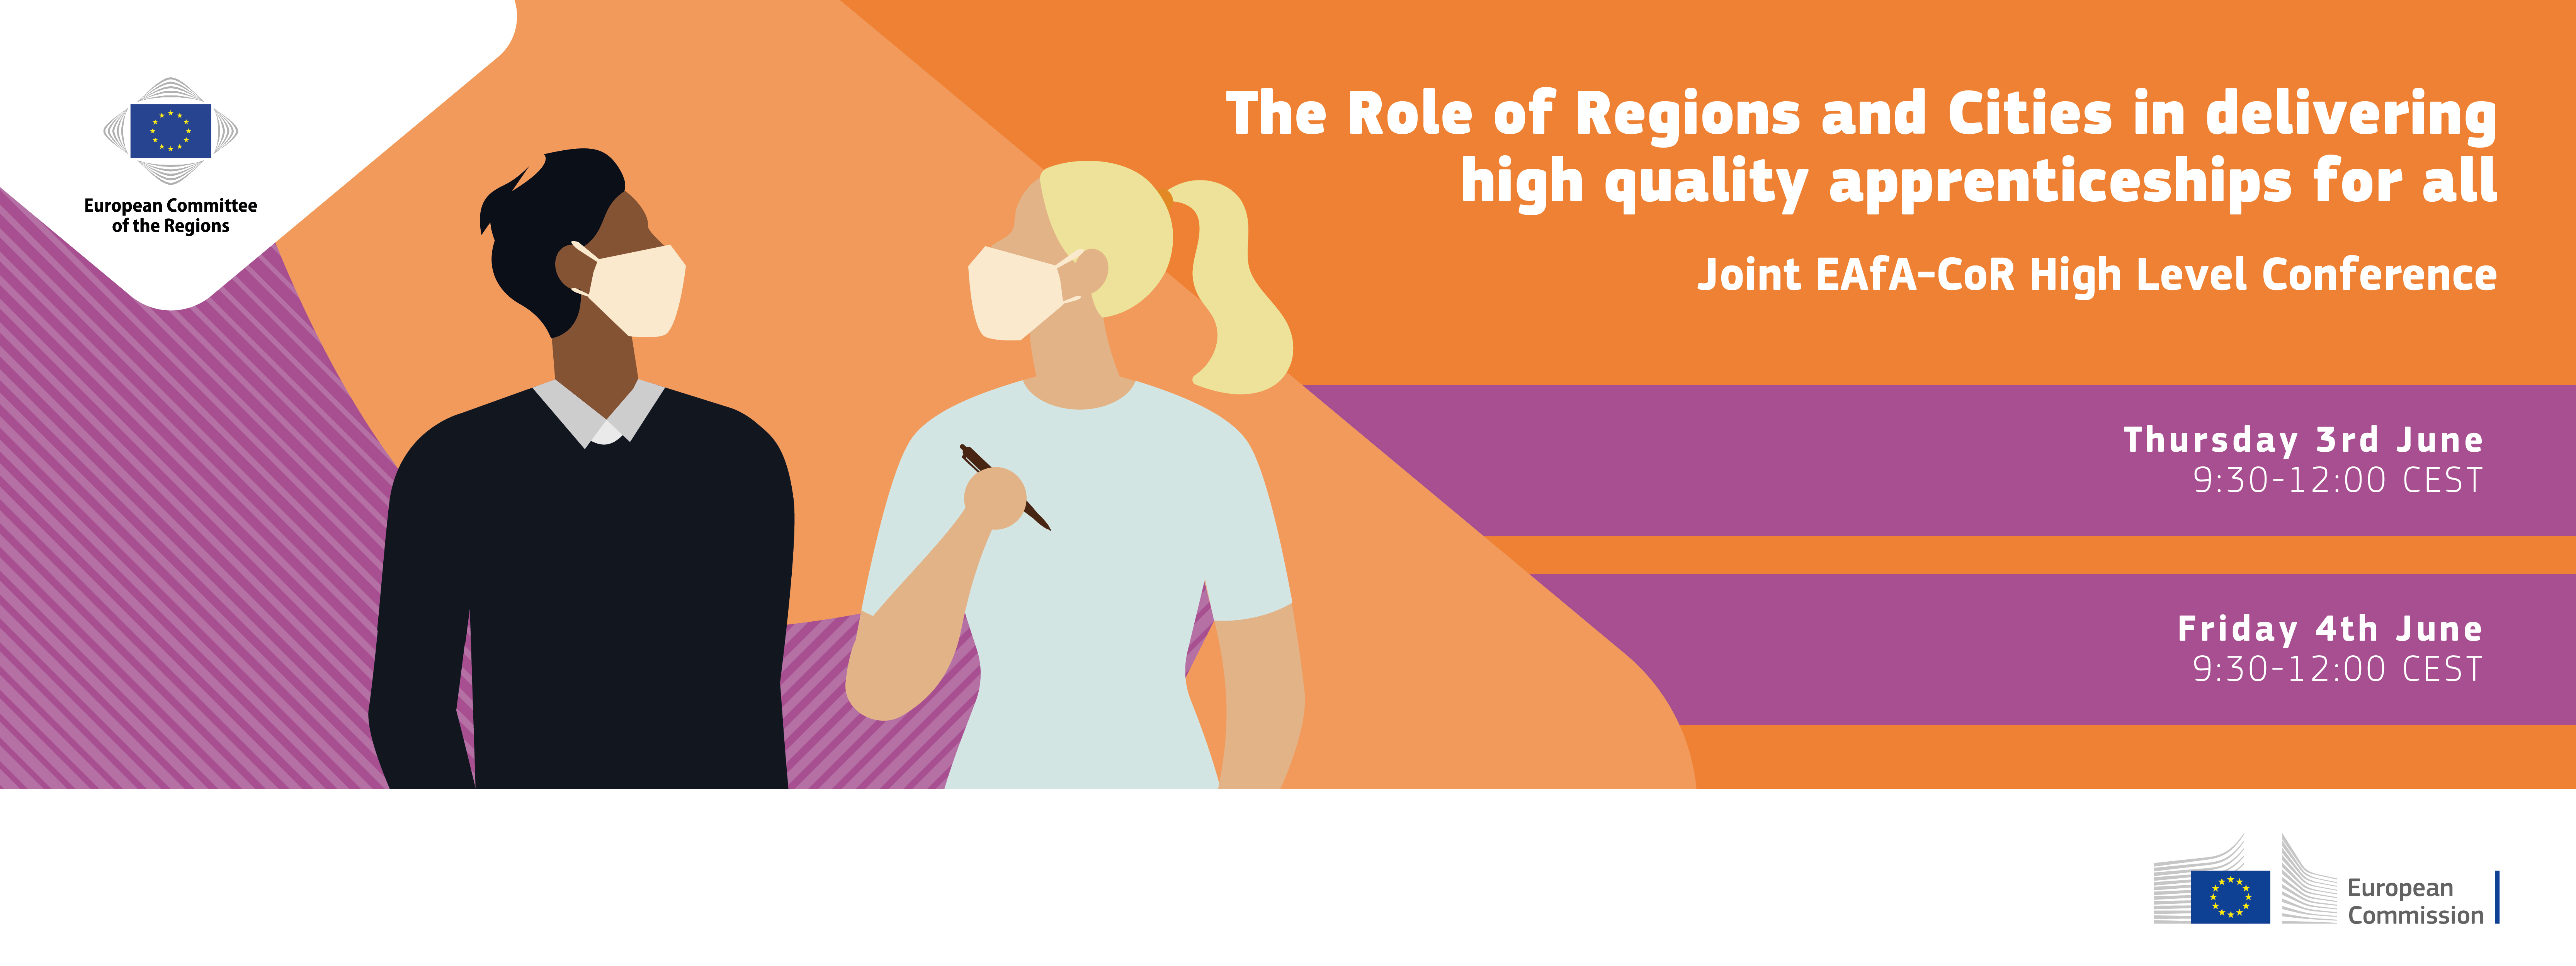 The role of regions and cities in delivering high-quality apprenticeships for all